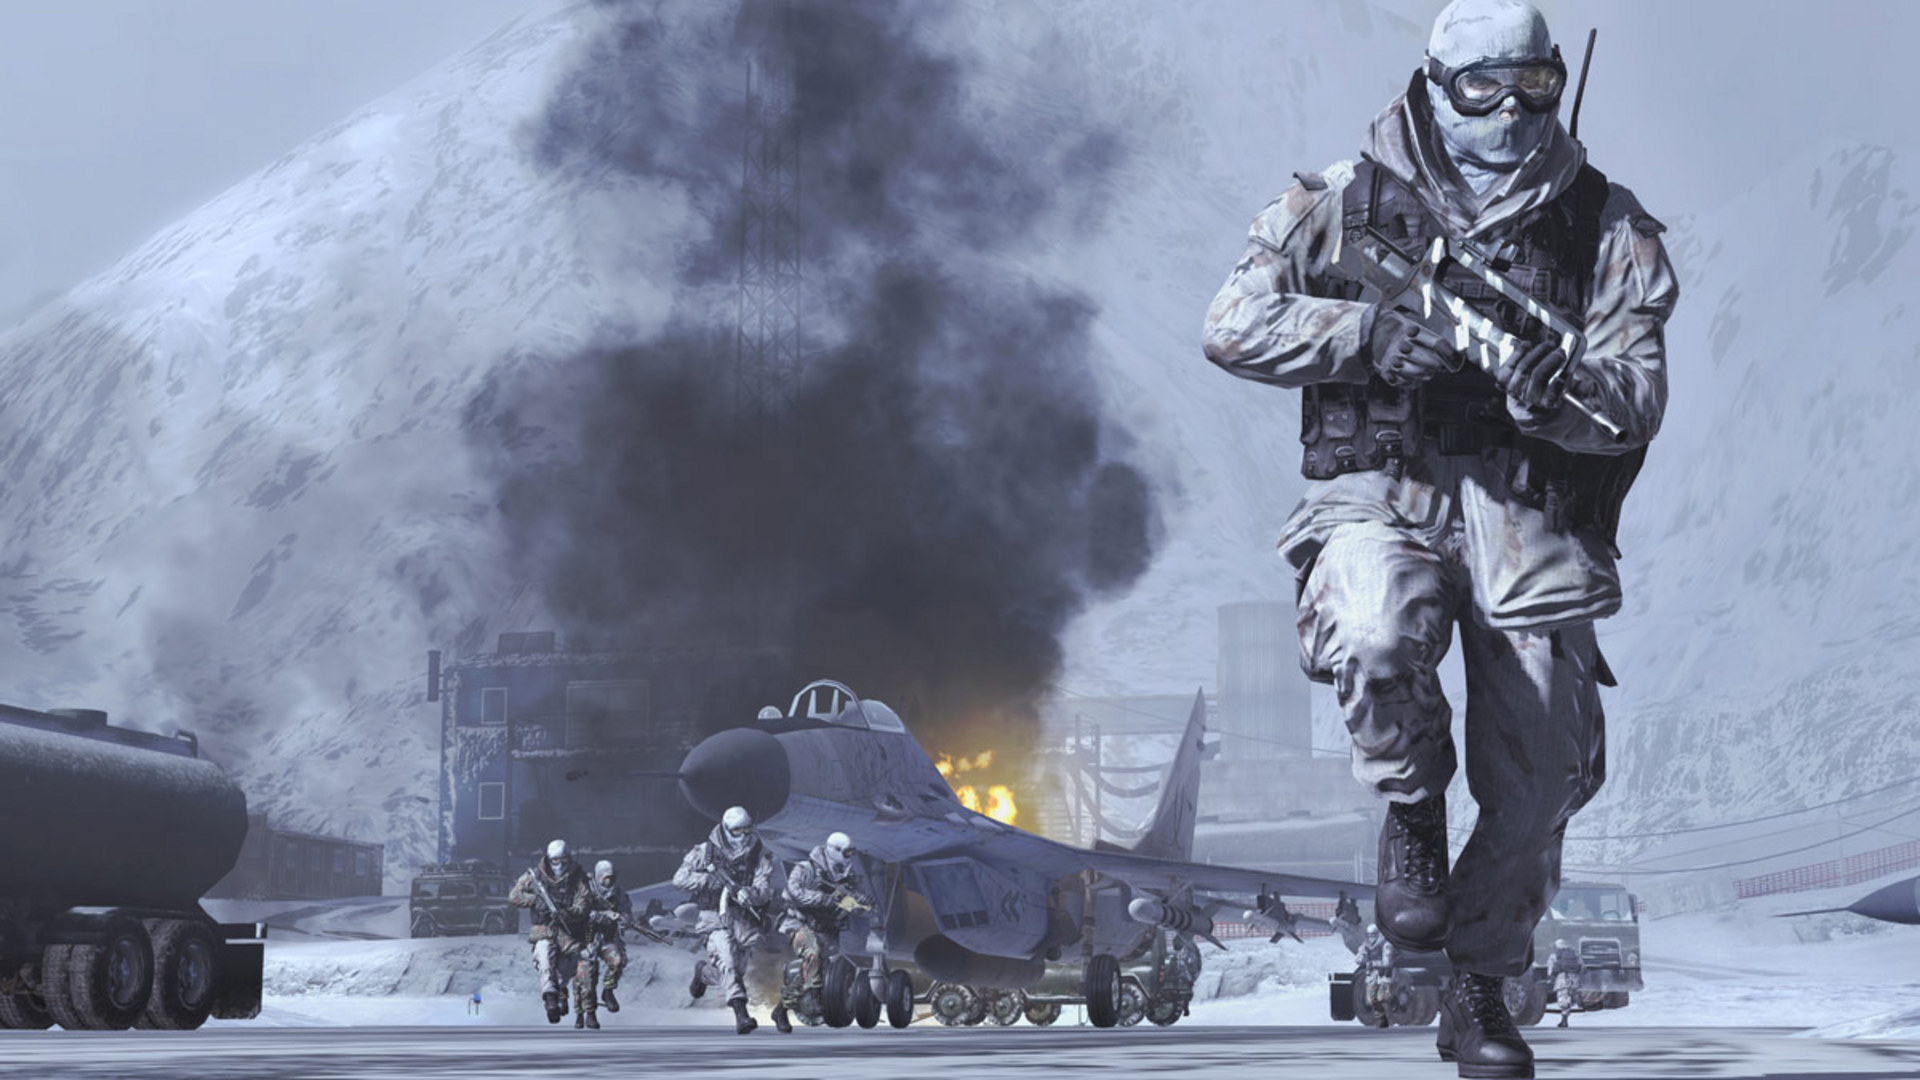 modern warfare 2 multiplayer crack torrent